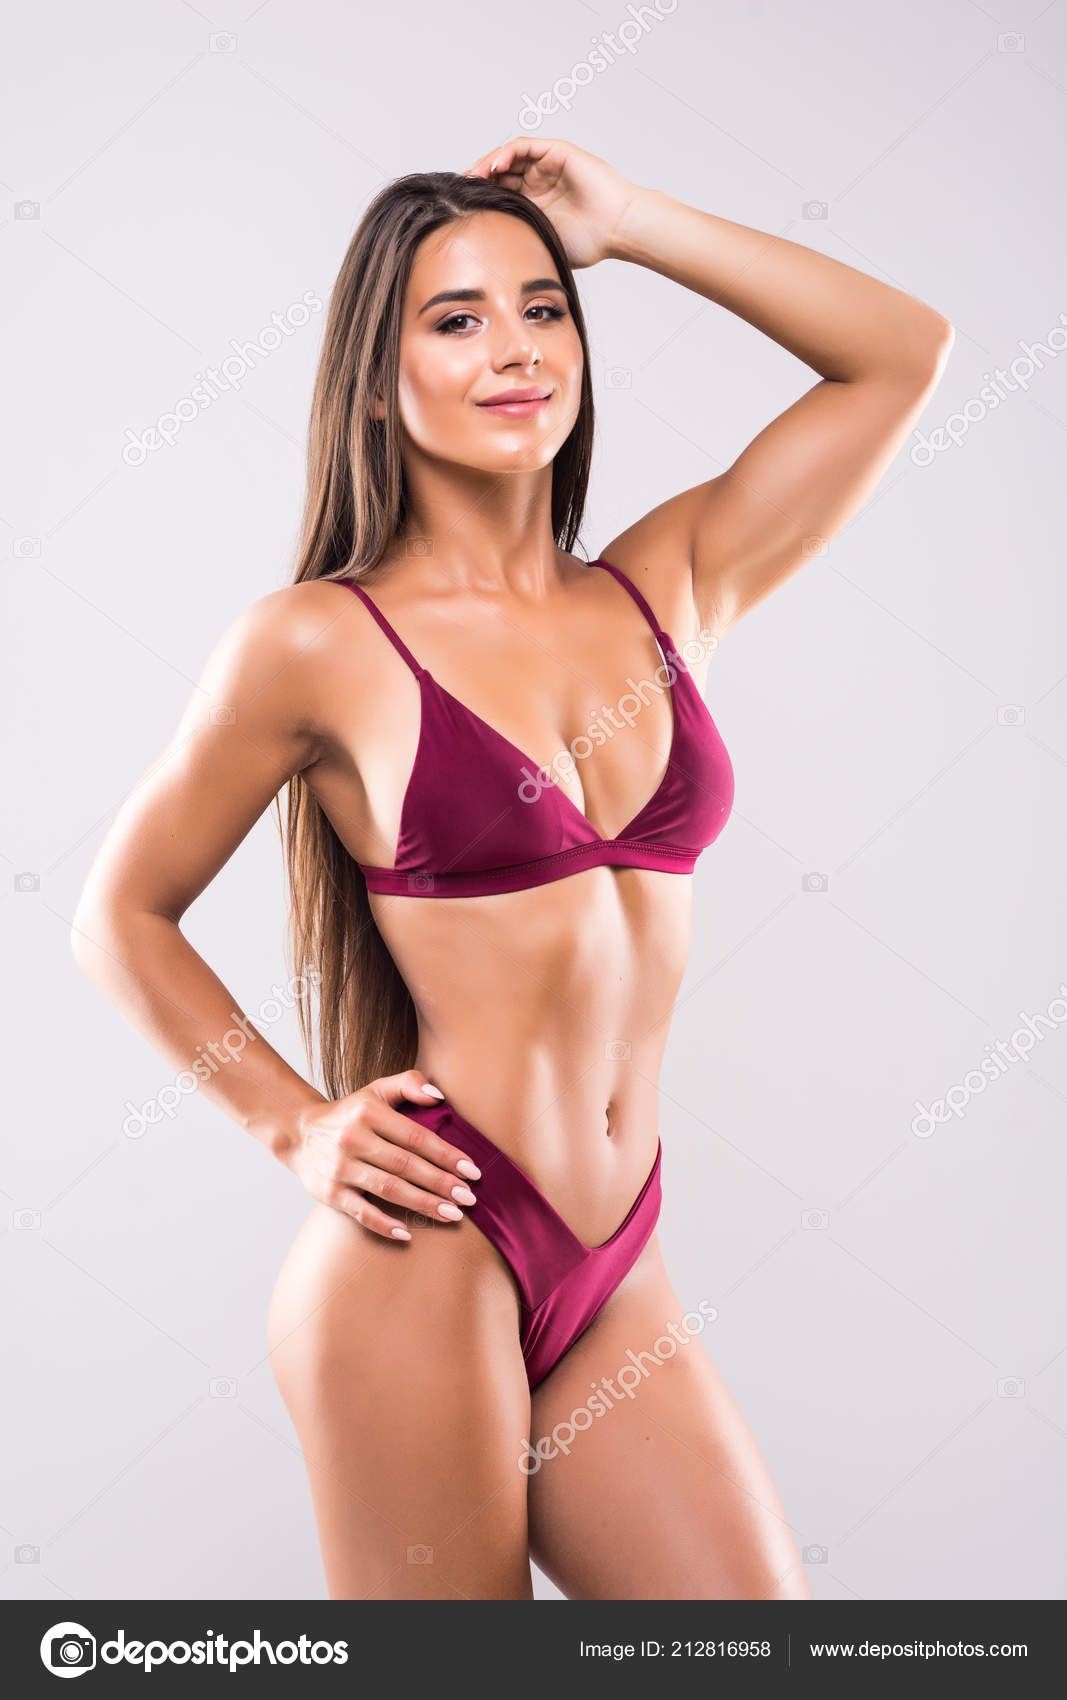 ef98a460d9 Young Woman Beautiful Slim Perfect Body Bikini White Background — Stock  Photo